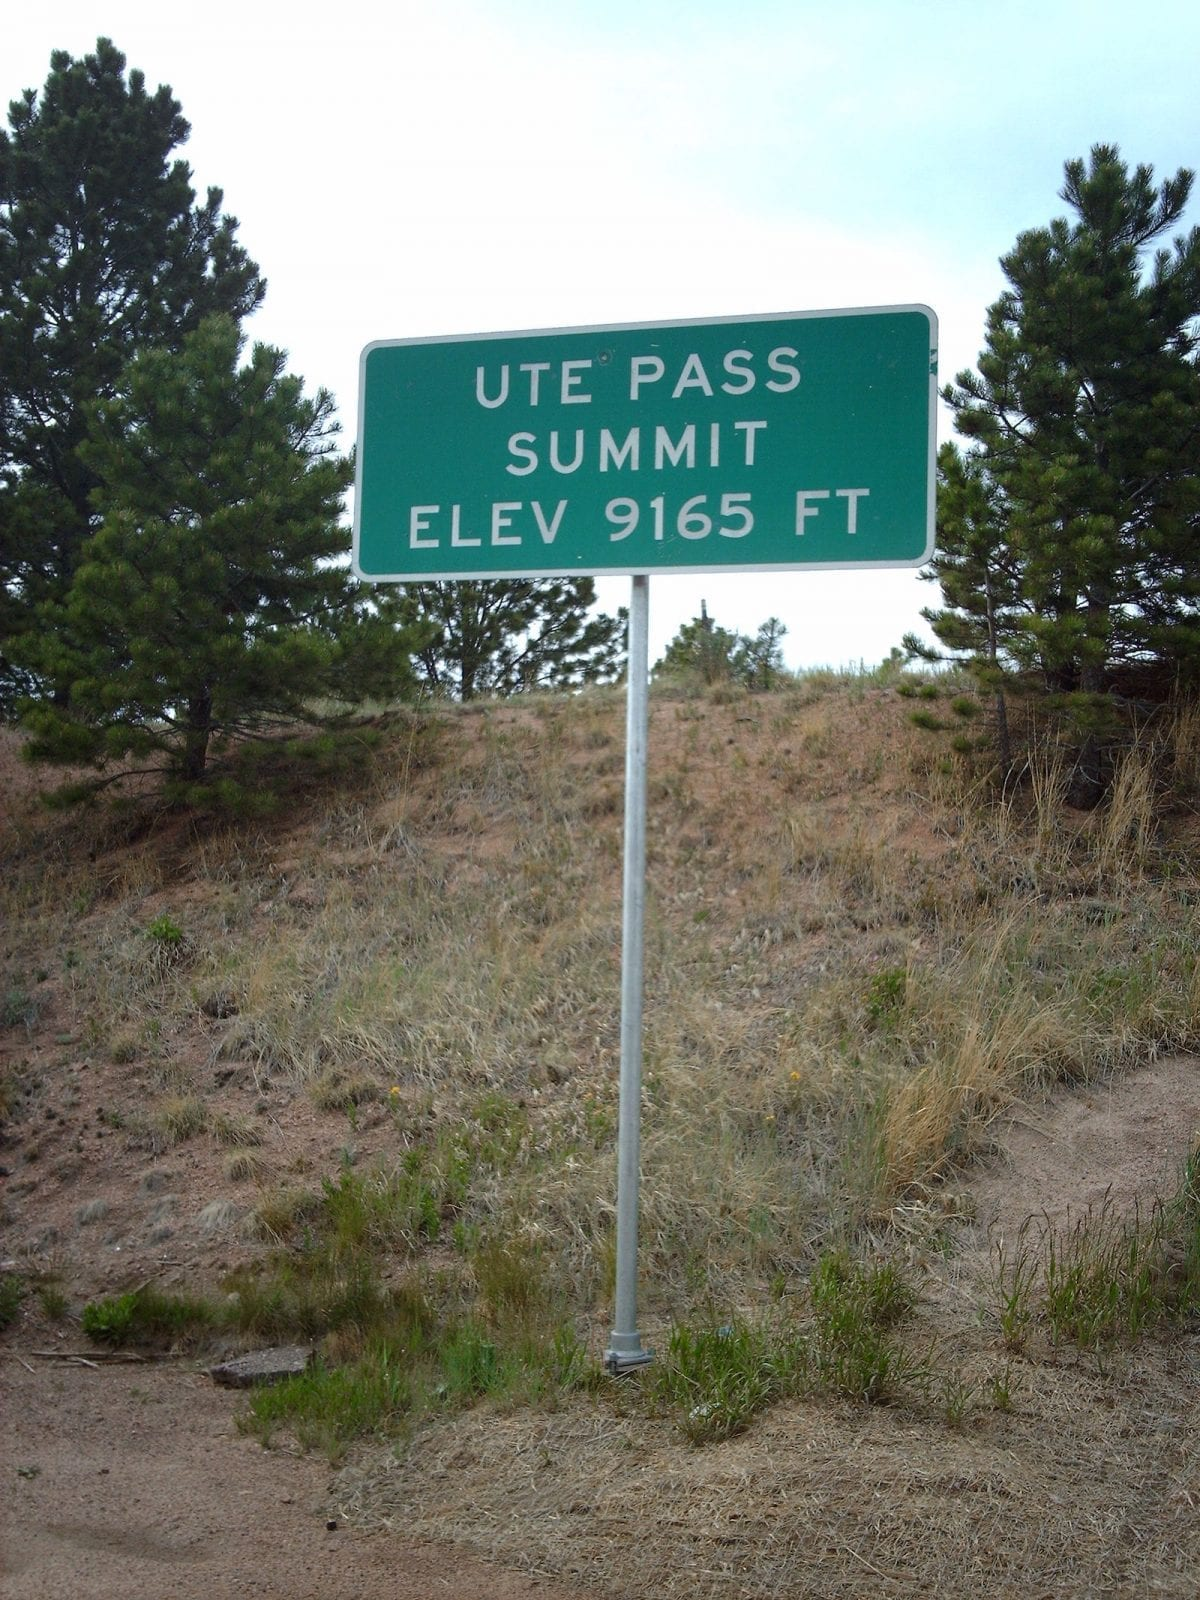 Ute Pass Summit sign, CO